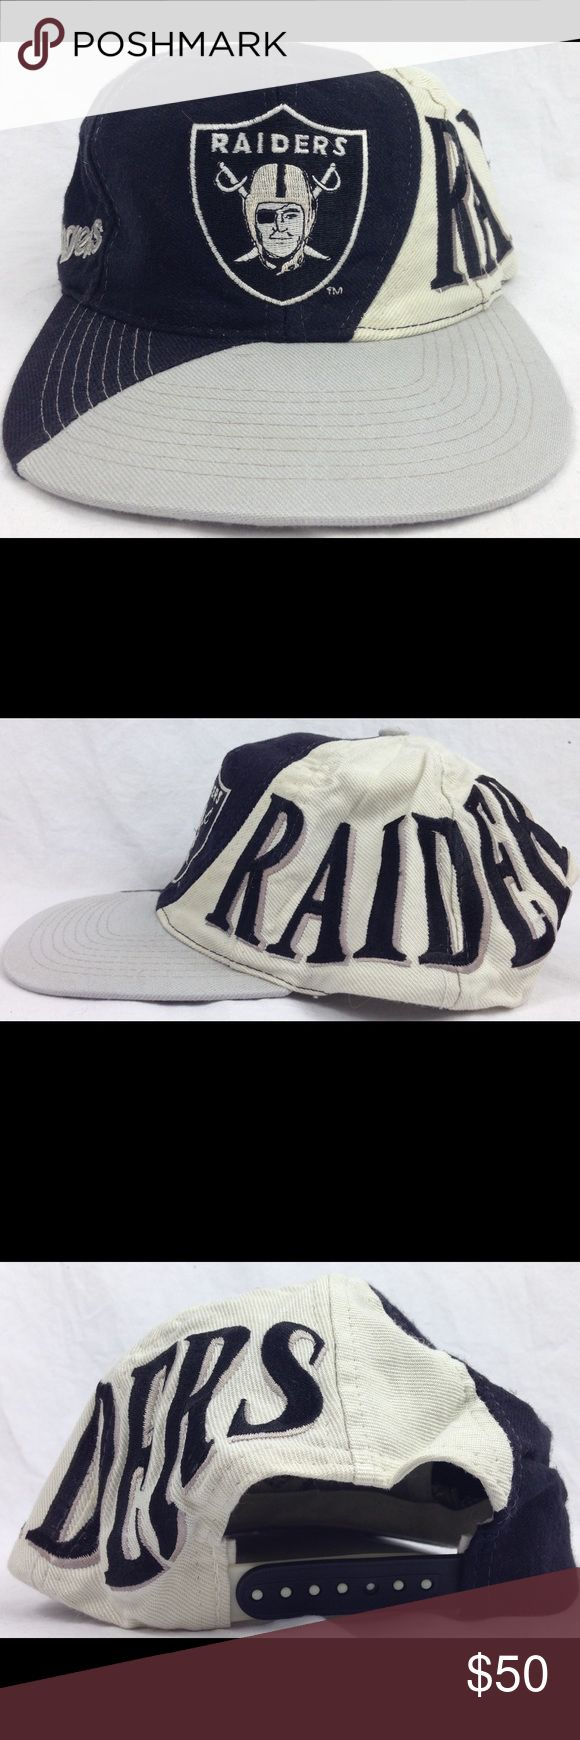 Vintage Los Angeles Raider Team NFL SnapBack Hat Hat is very rare and collectible. Very unique design. Hat is in good condition for its age. See pictures for details. Any questions please feel free to contact me. Accessories Hats